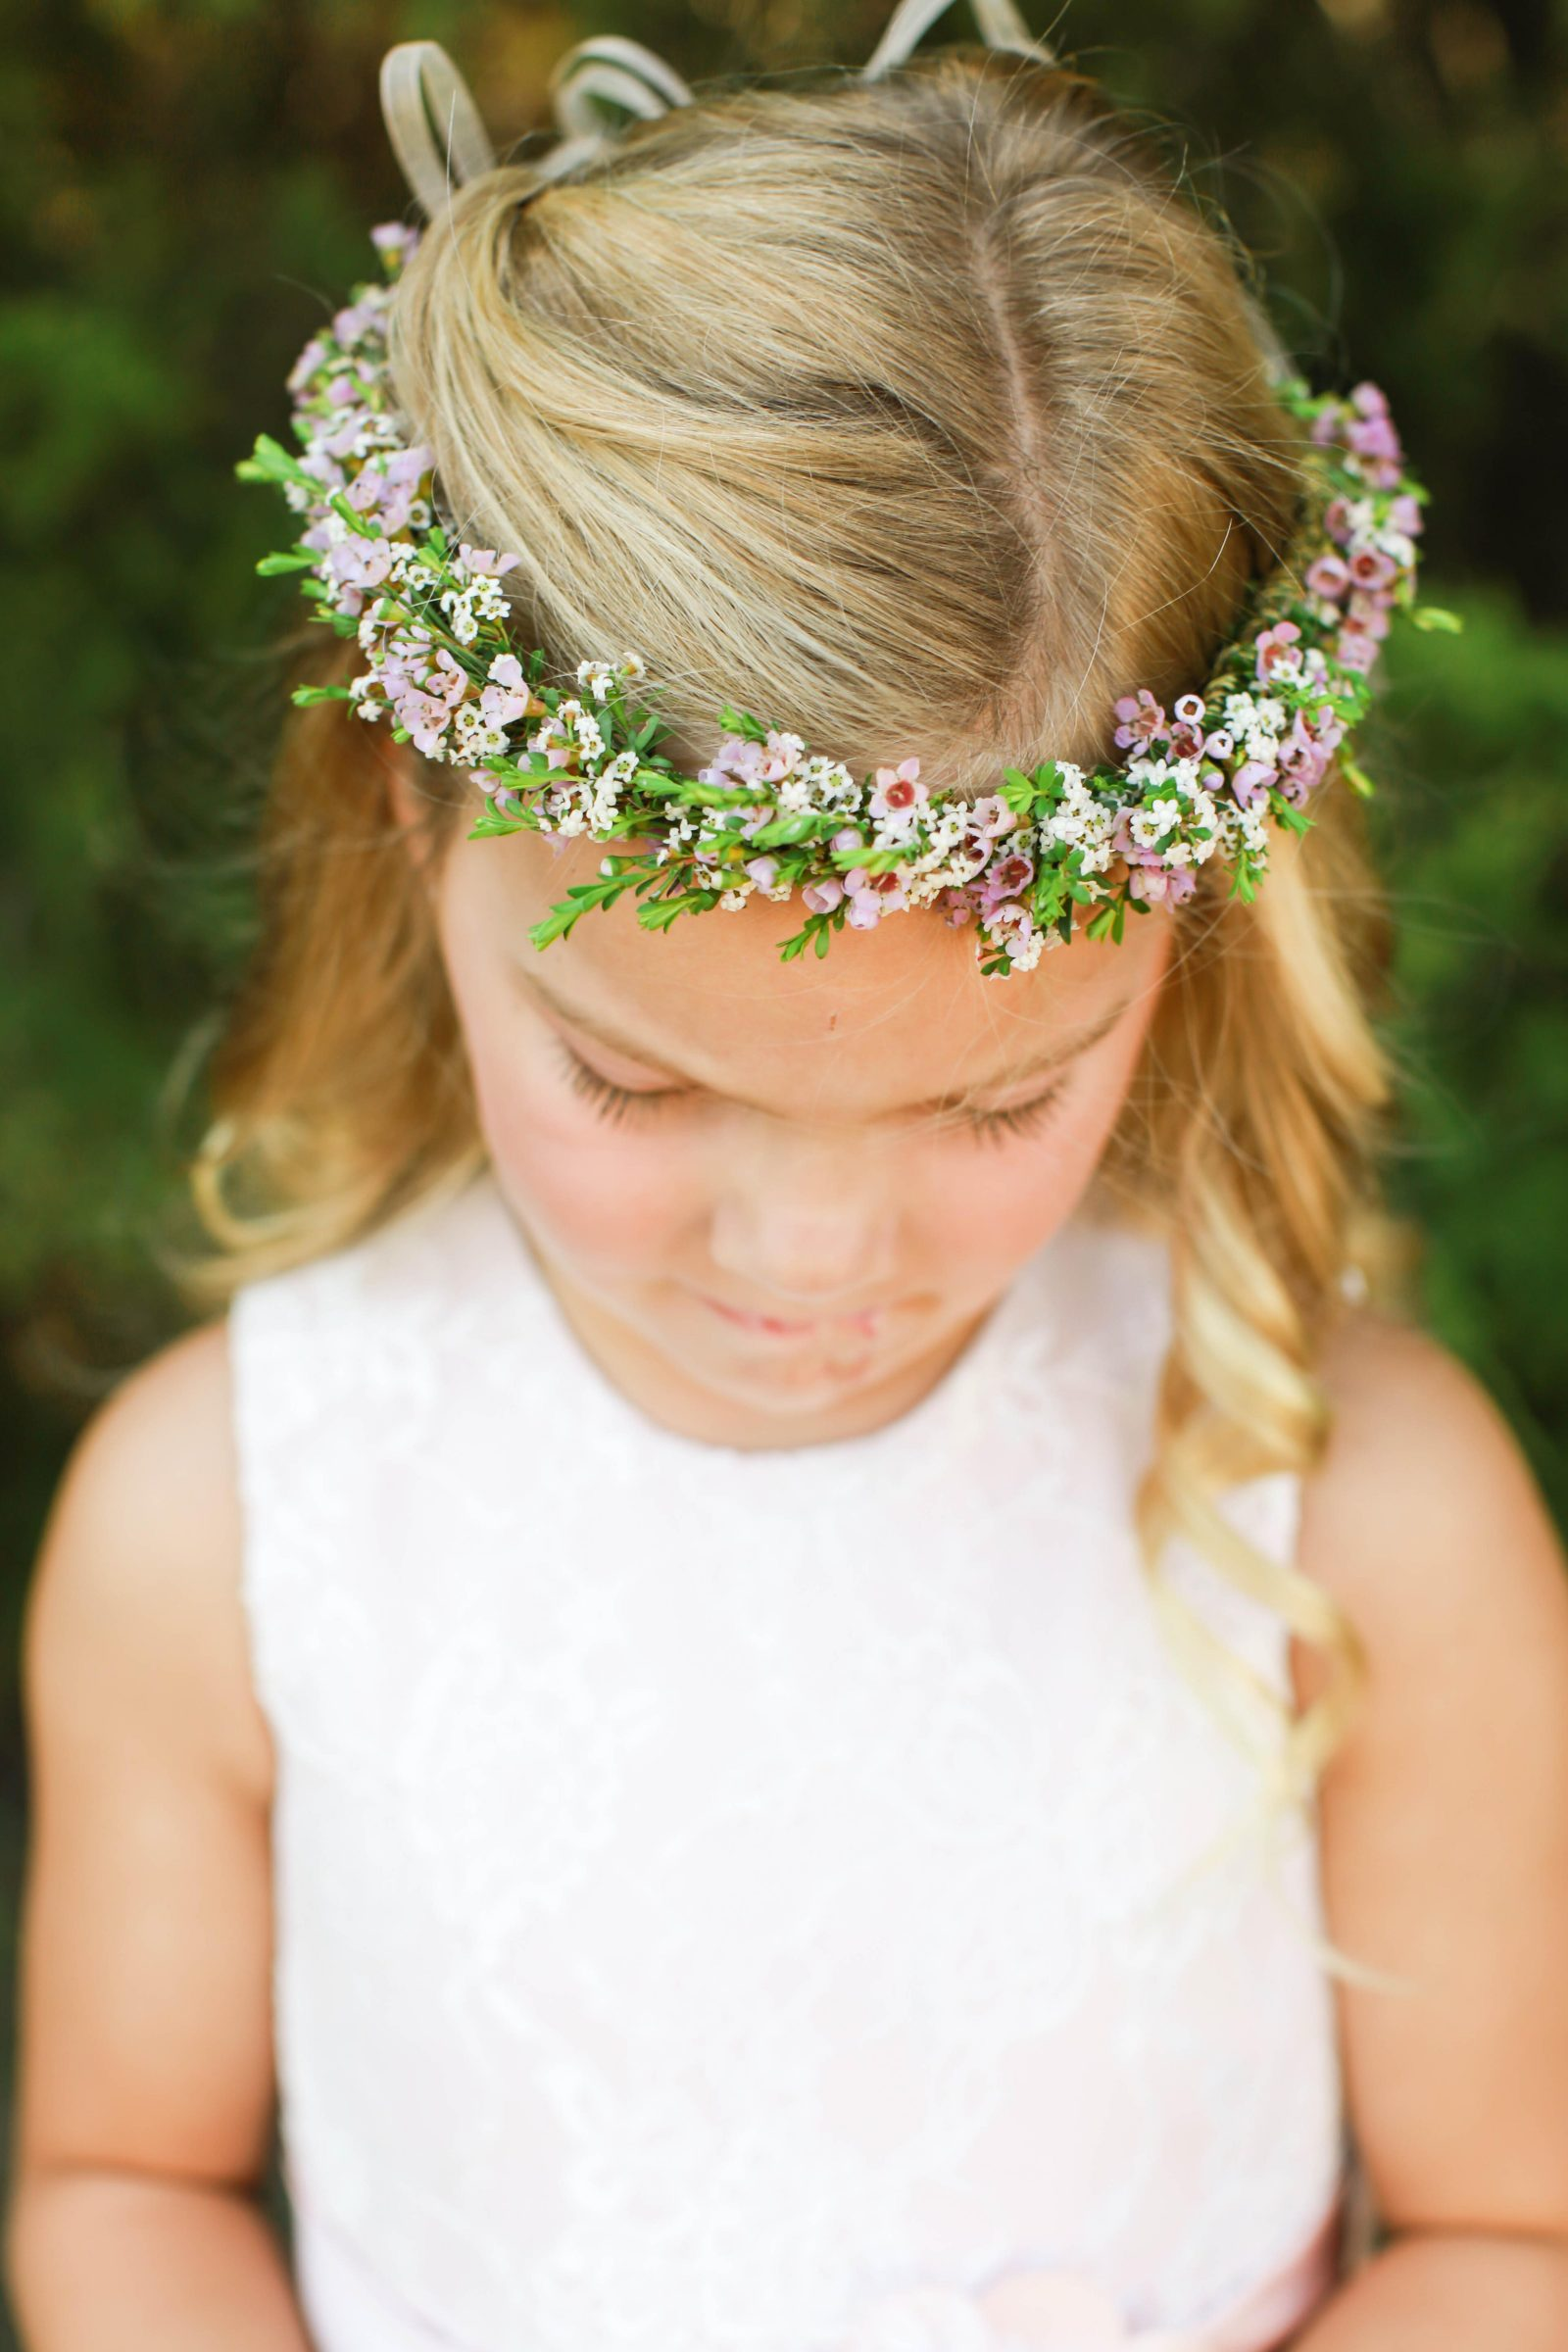 Wild rose events for the flower girls wild rose events flower girl crown izmirmasajfo